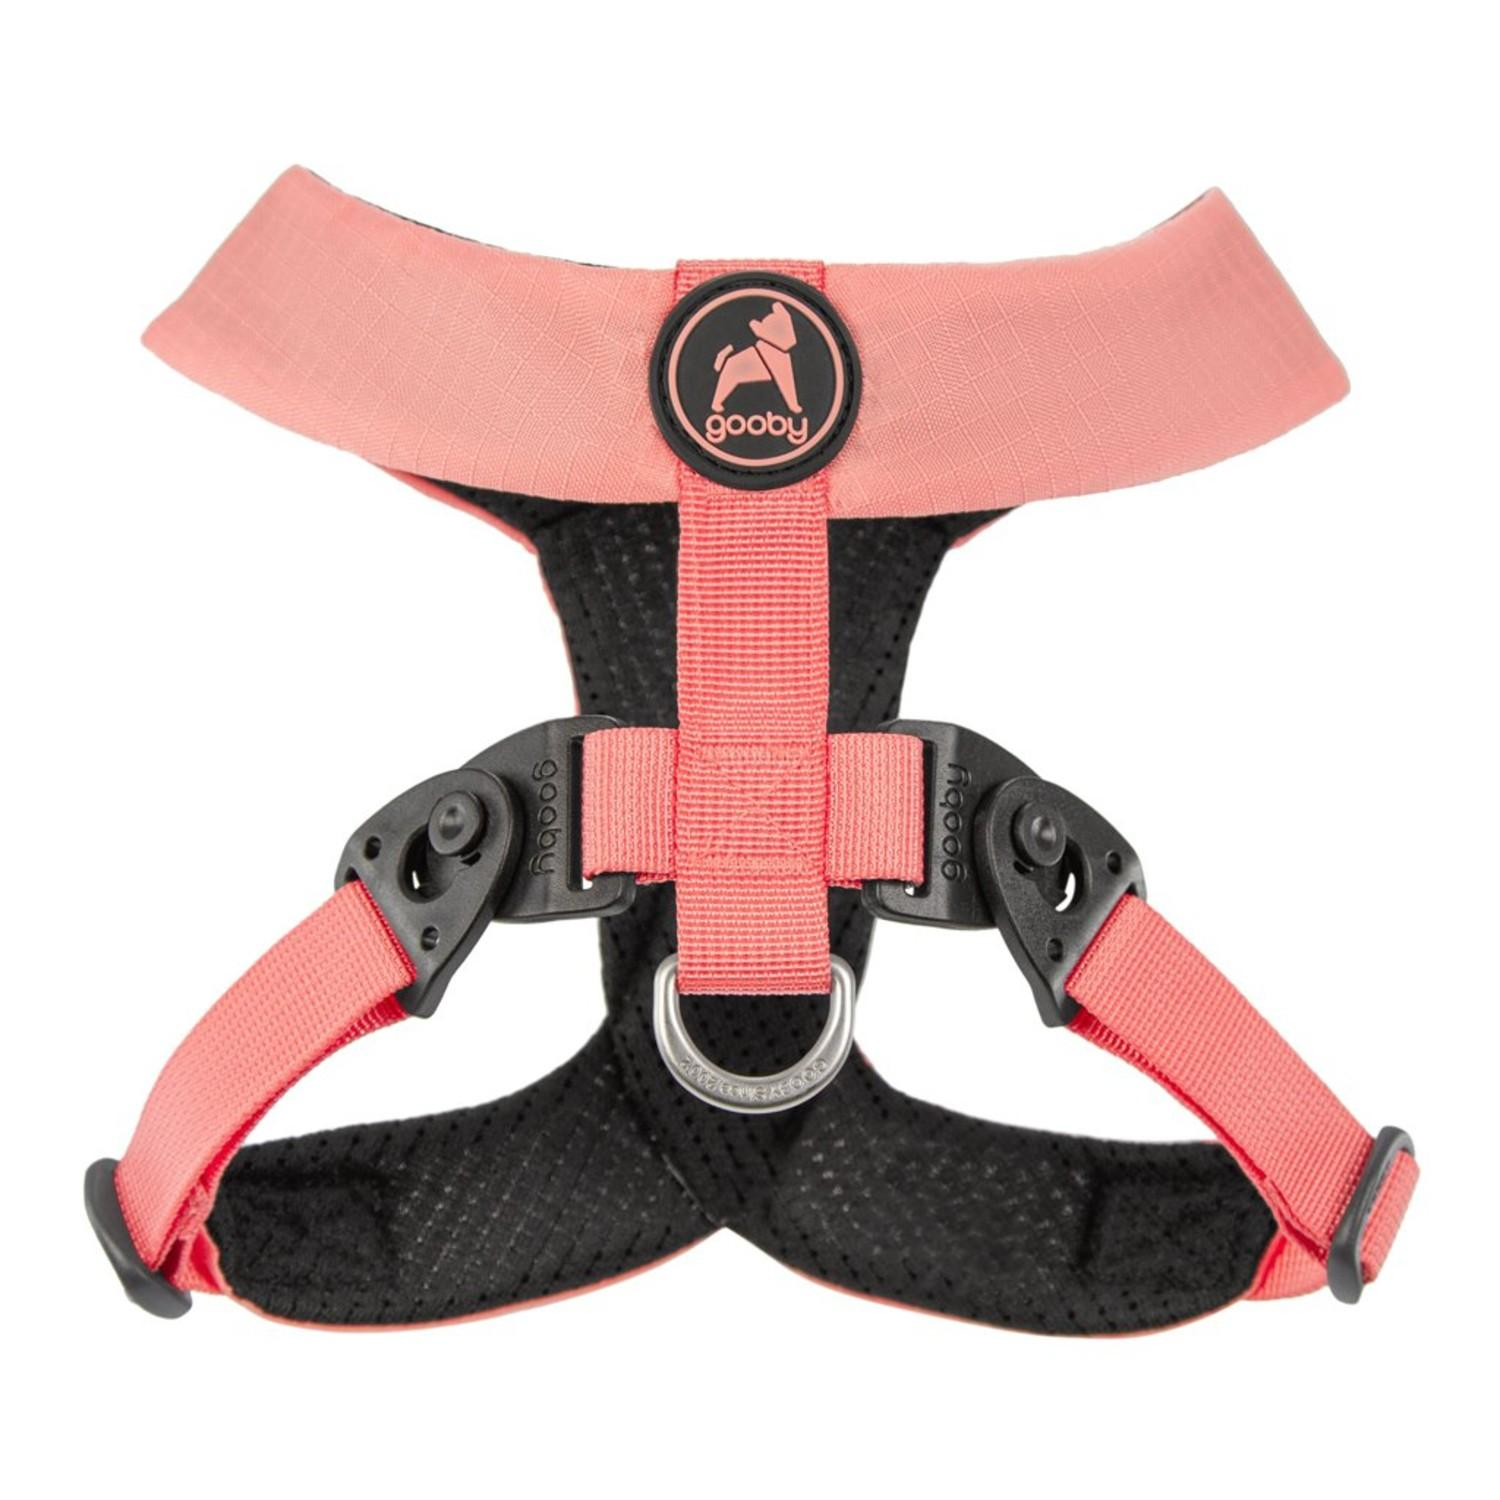 Gooby Comfort X Dual Snap Dog Harness - Pink